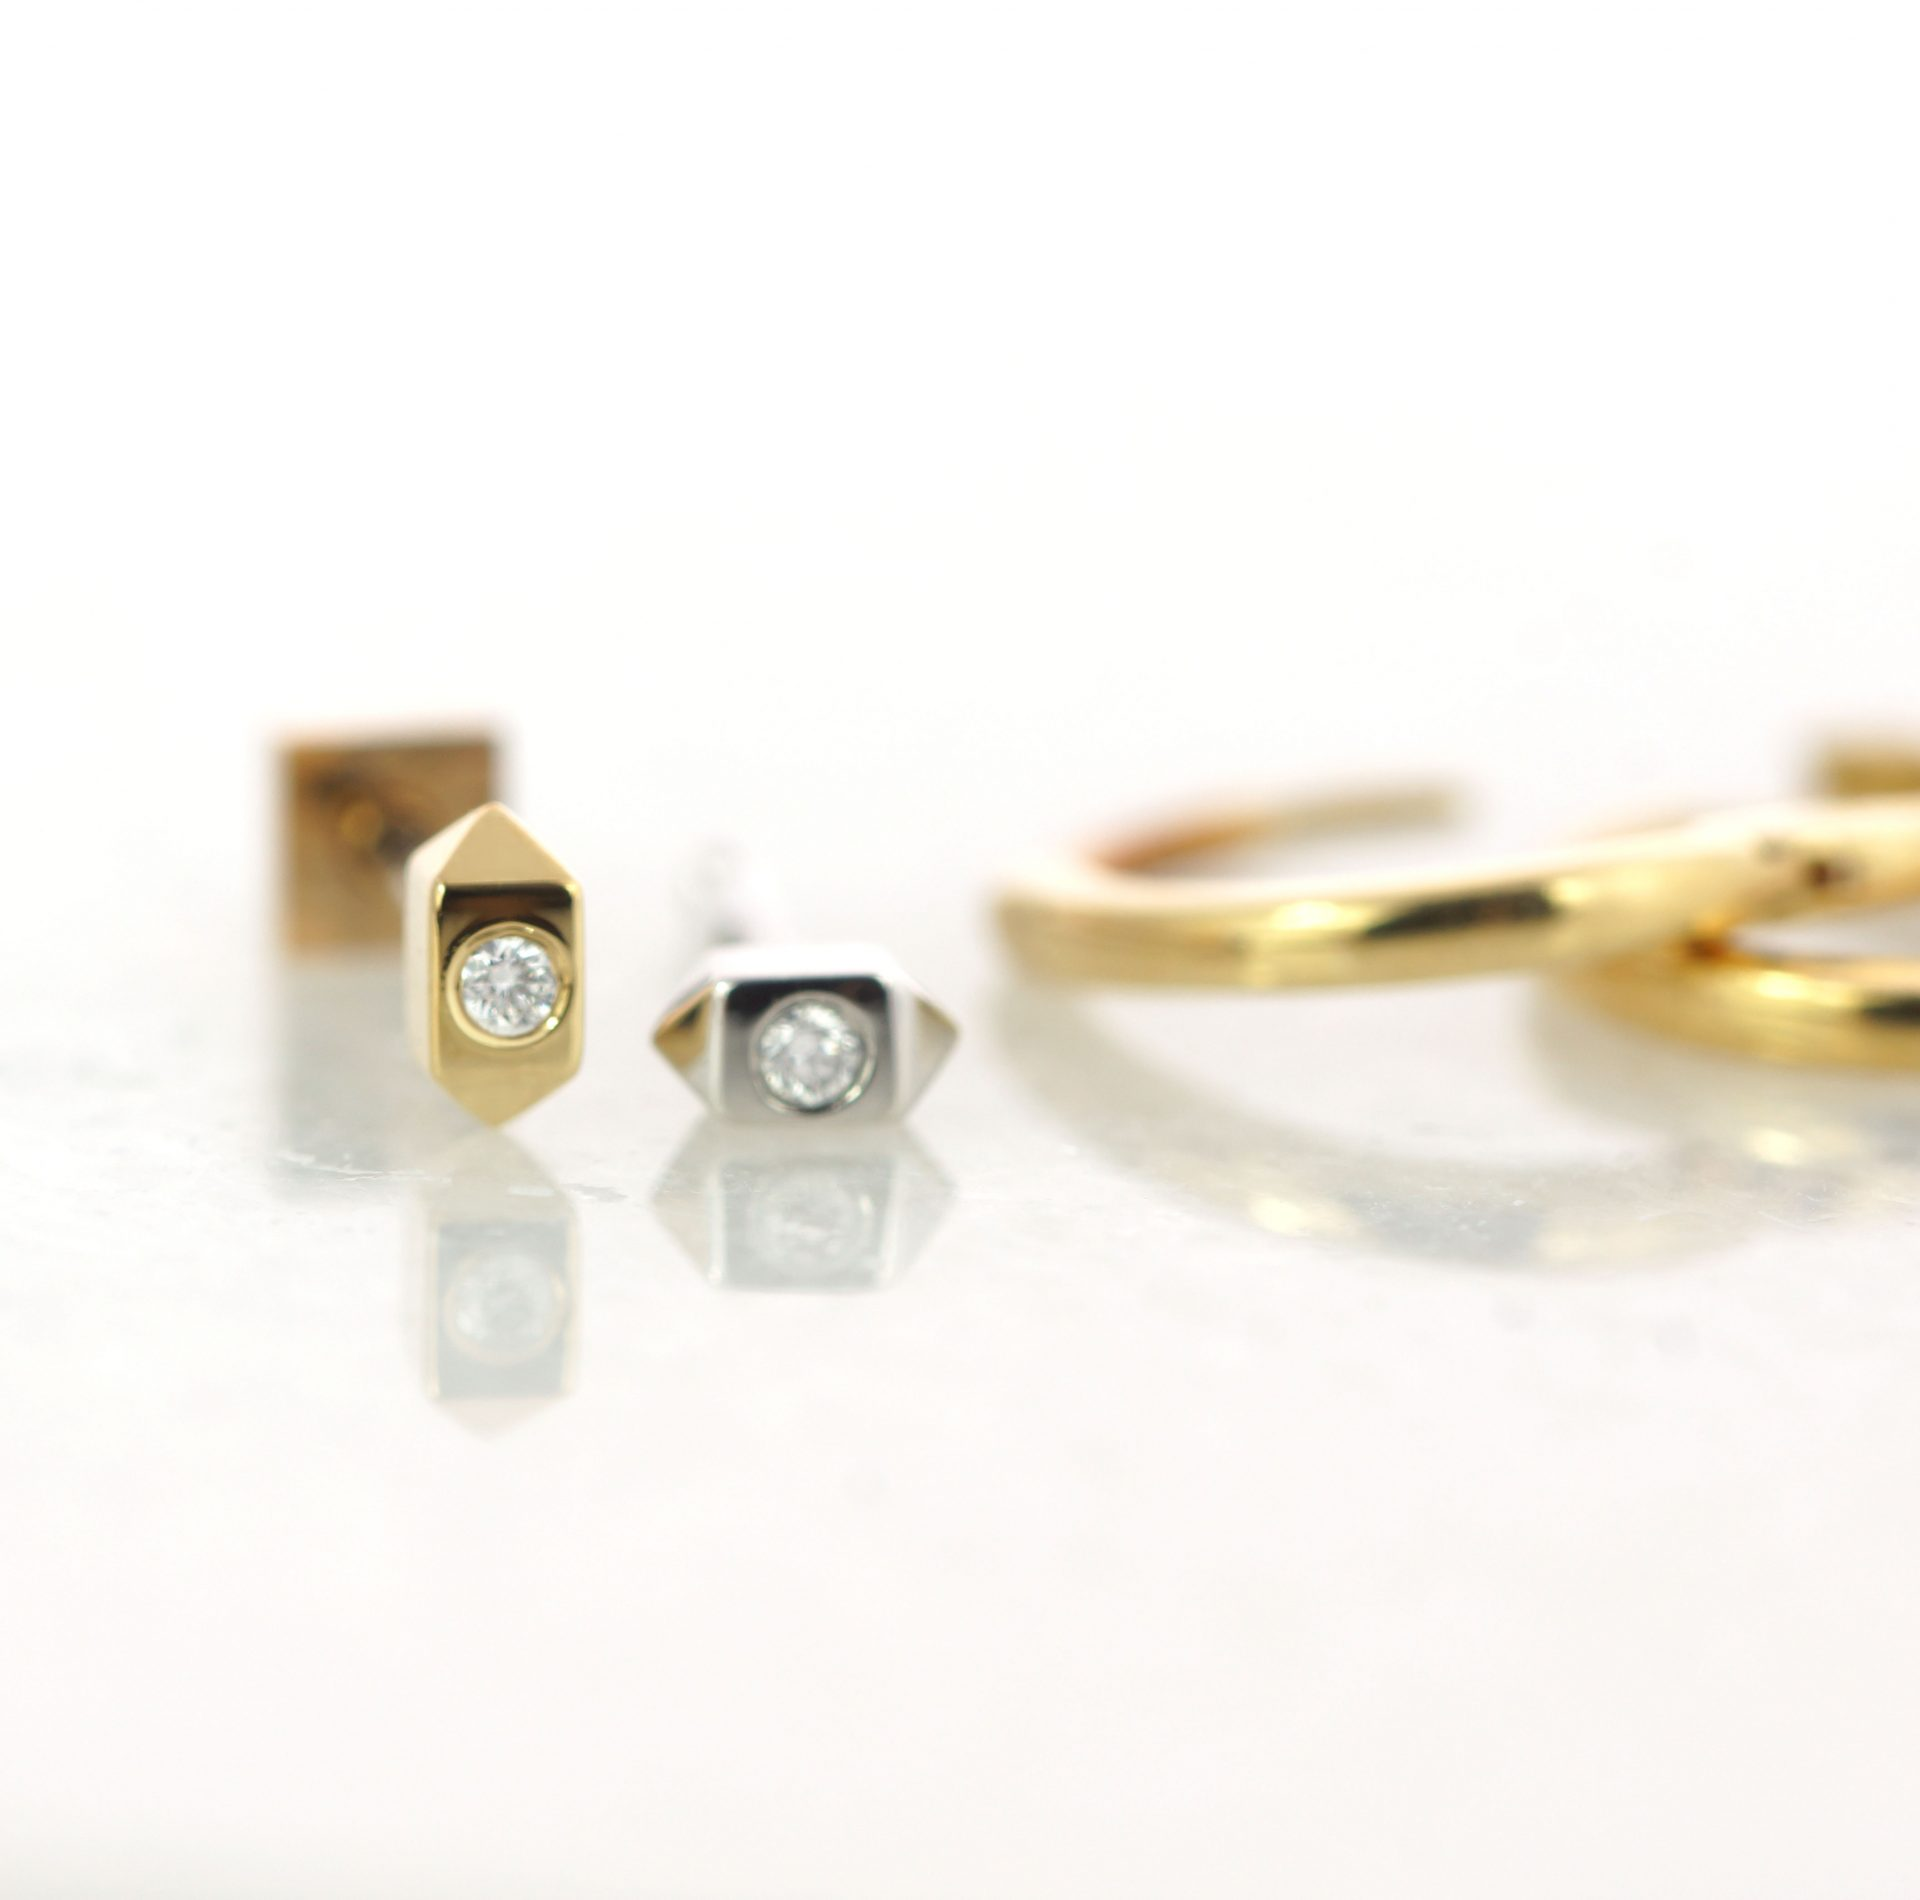 Piercings-That-Look-Great-on-Guy-Gift-For-Him-diamond-cartilage-stud-18k-gold-lena-cohen-london